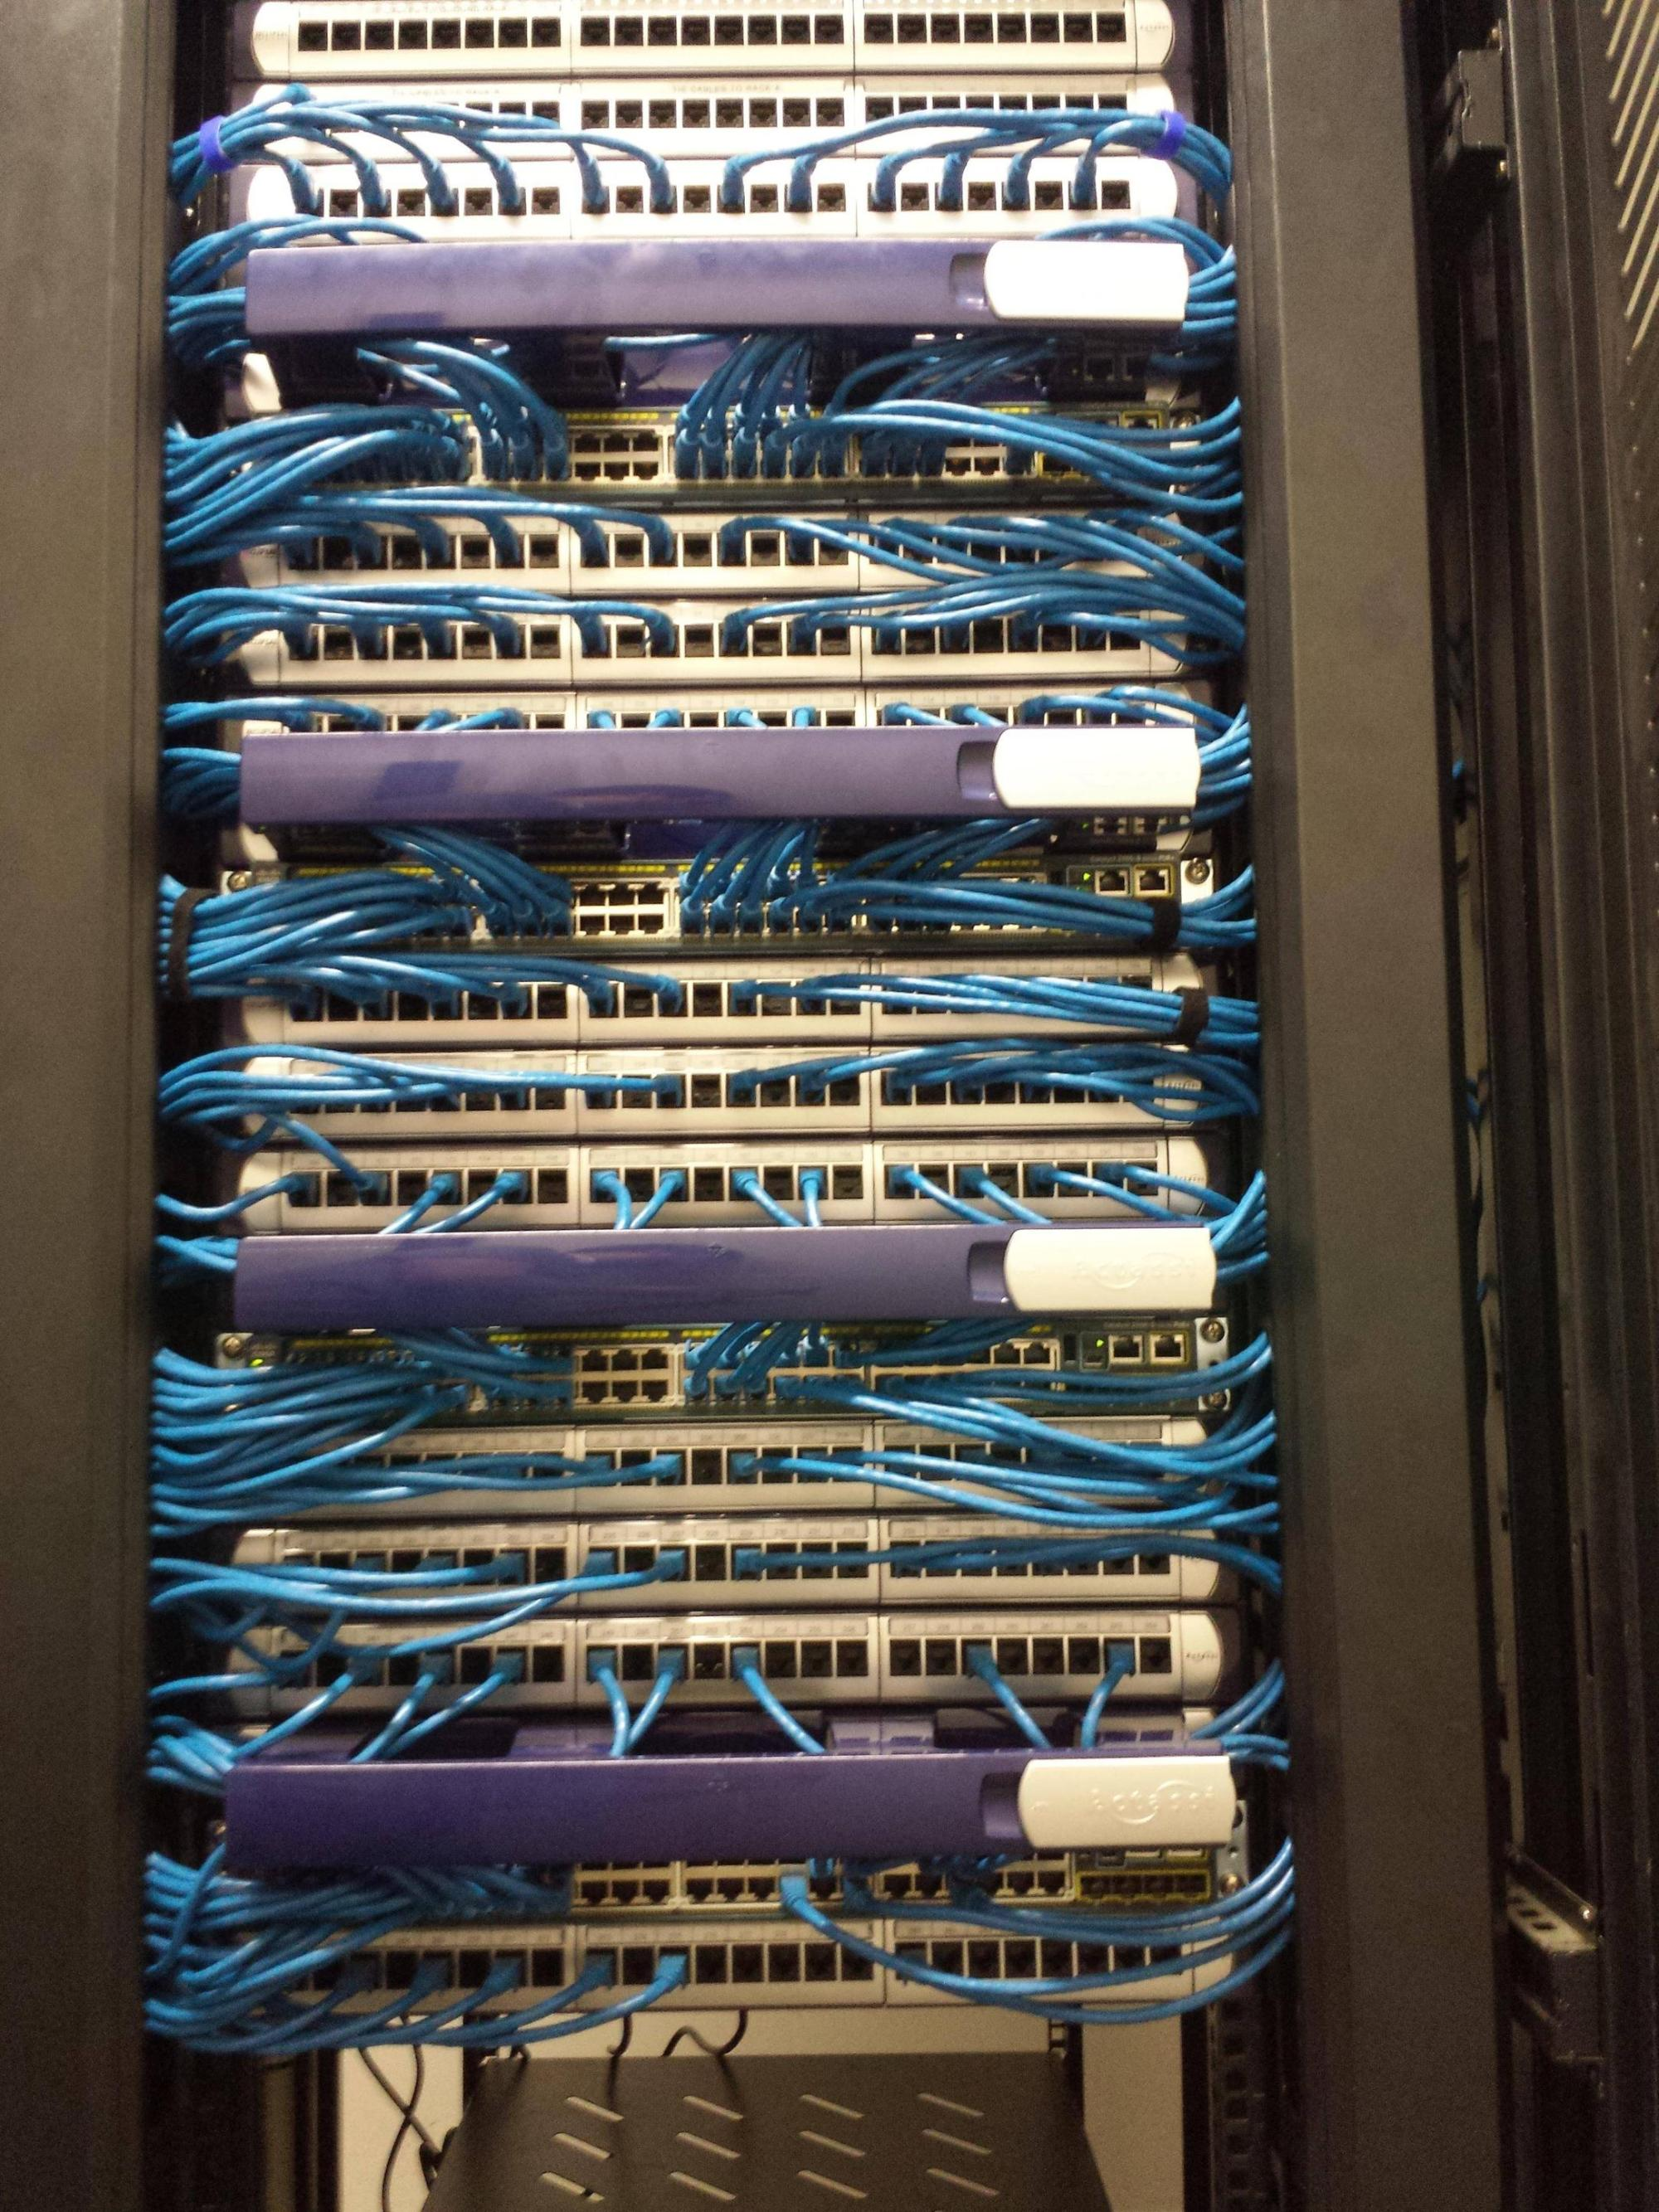 hight resolution of server network cables